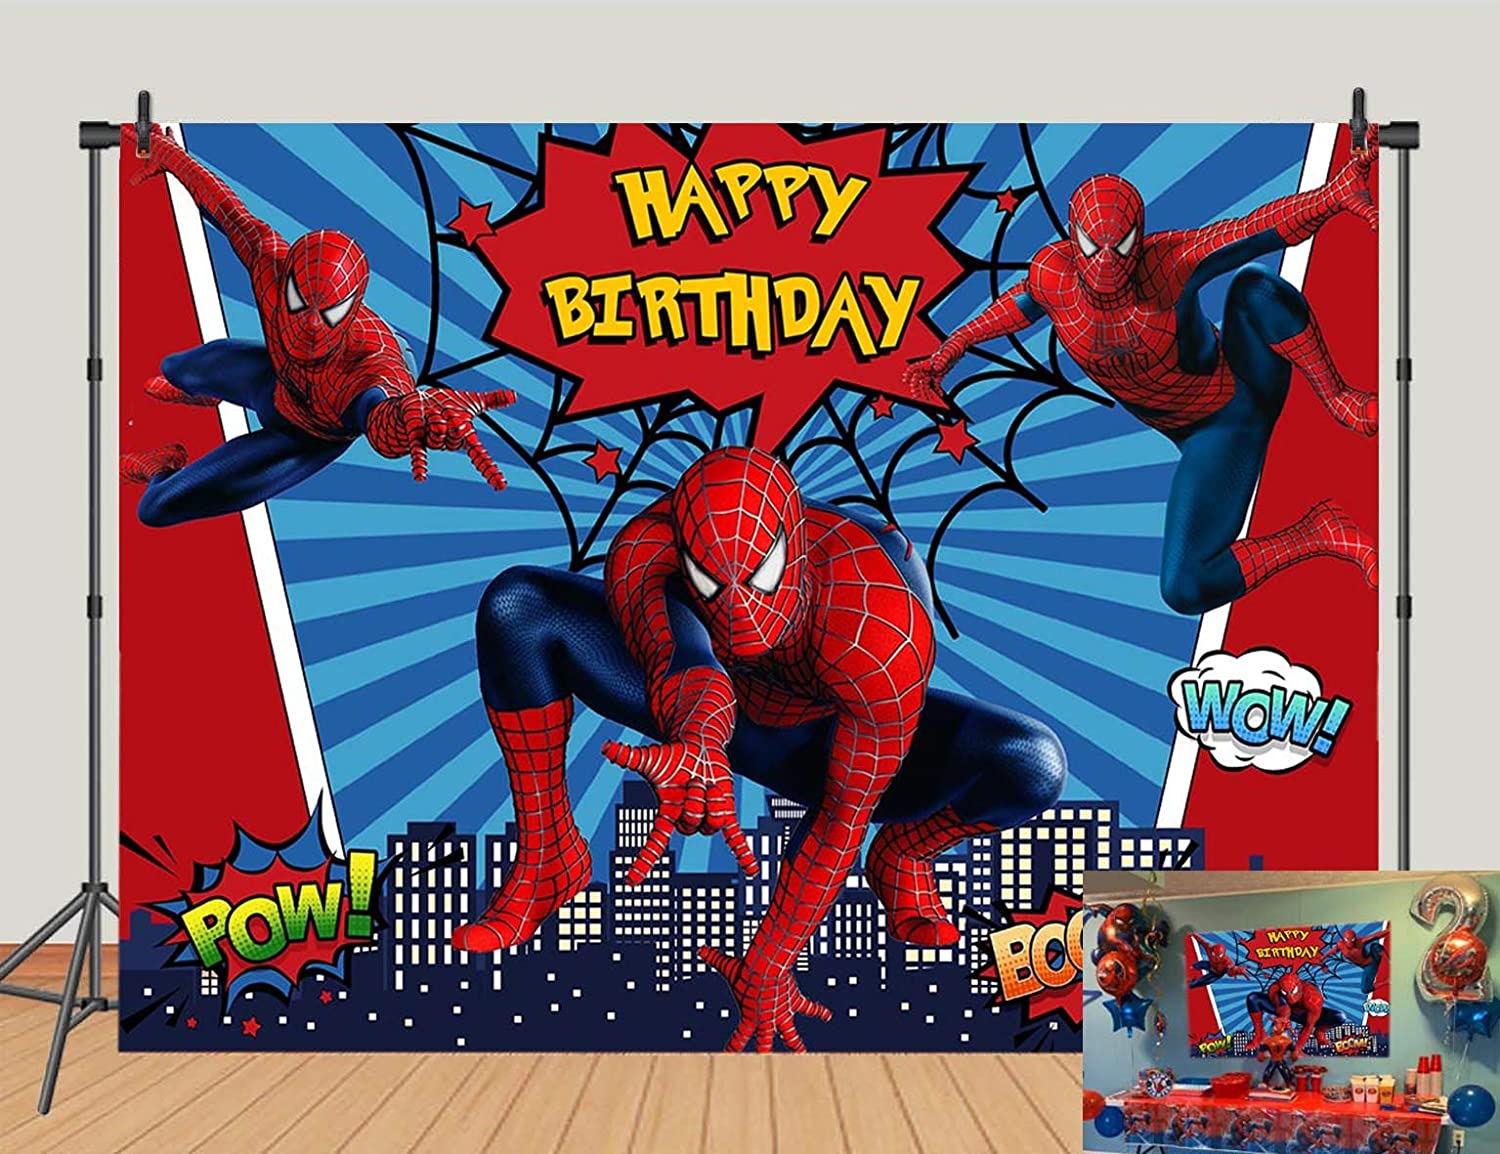 Red Spiderman Photo Backdrops Super City Spiderman Boys Baby Shower Birthday Party Decoration Photography Background Superhero Citycape Kids Studio Booth Props 5x3ft